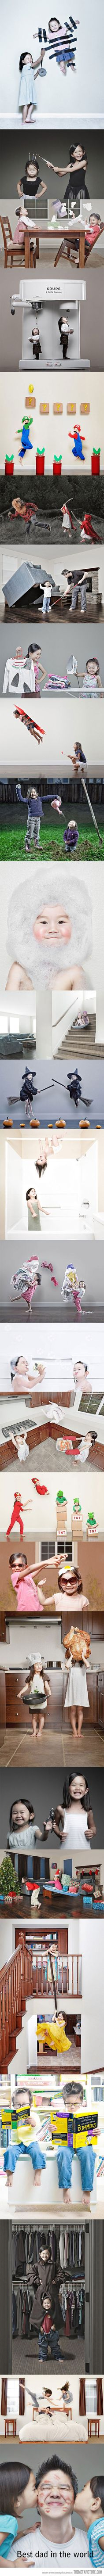 I love this guy's photos! His little girls are pretty awesome models too!